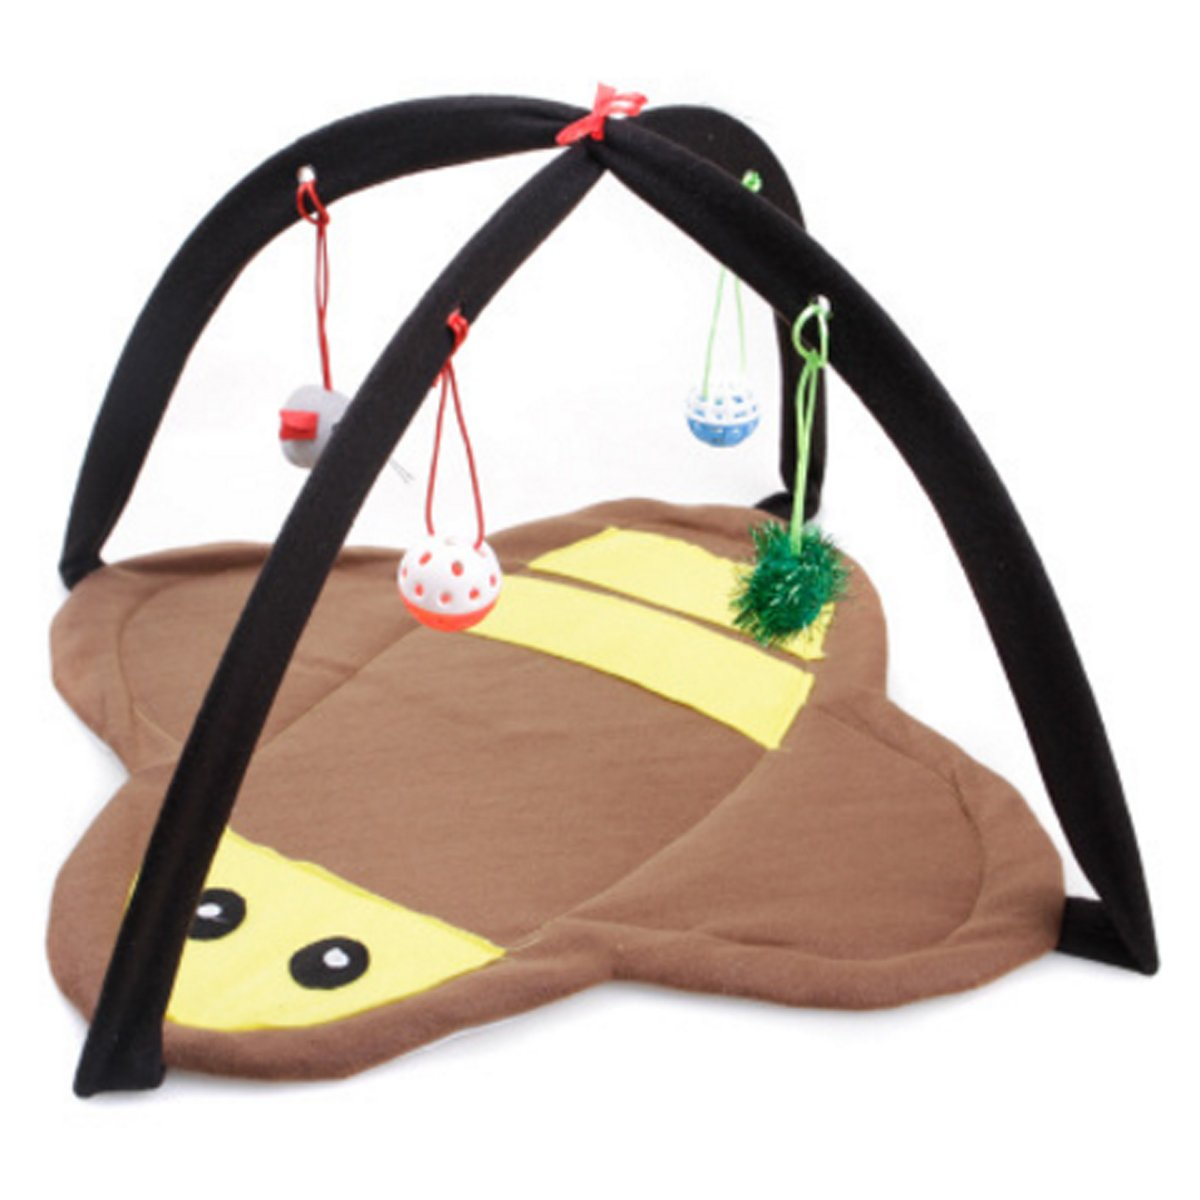 IDS Home Cat Bed Tent Foldable Bee Style Soft Fleece Breathable Matress with Ball for Playing Sleeping - Yellow + Brown